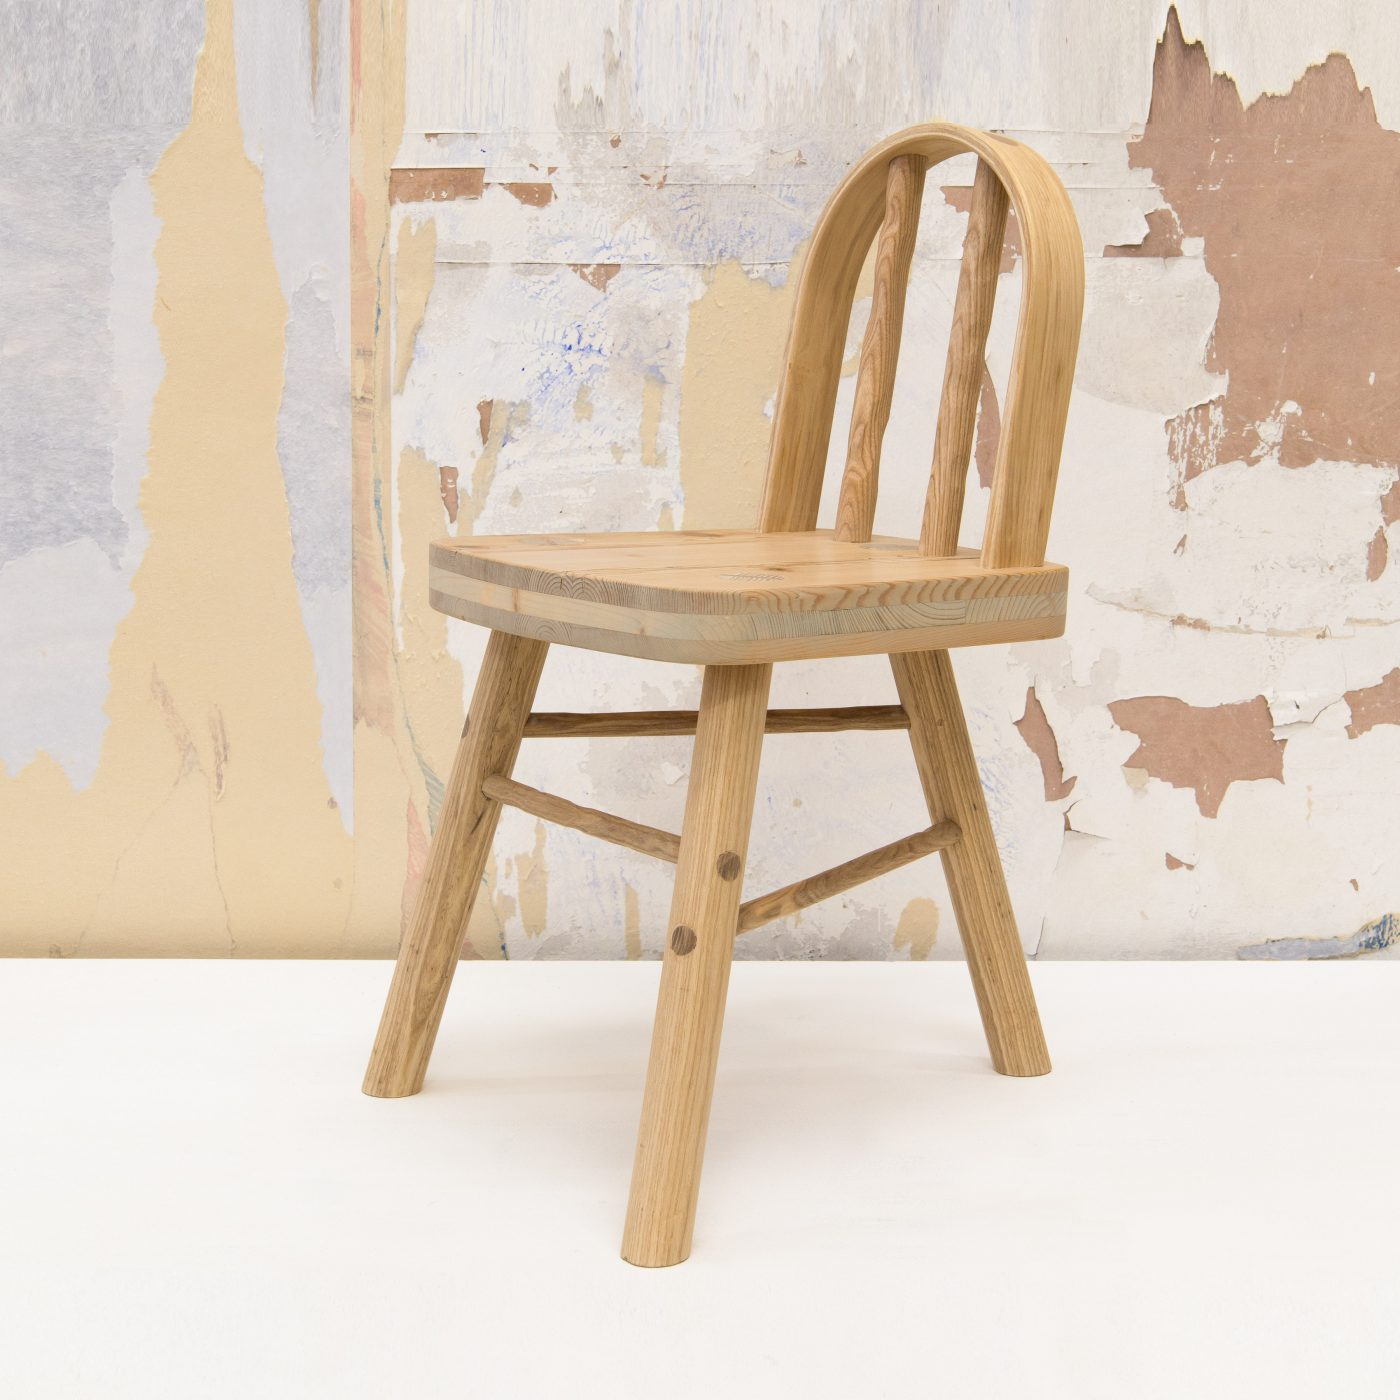 Jan Hendzel Studio lentini chair-1